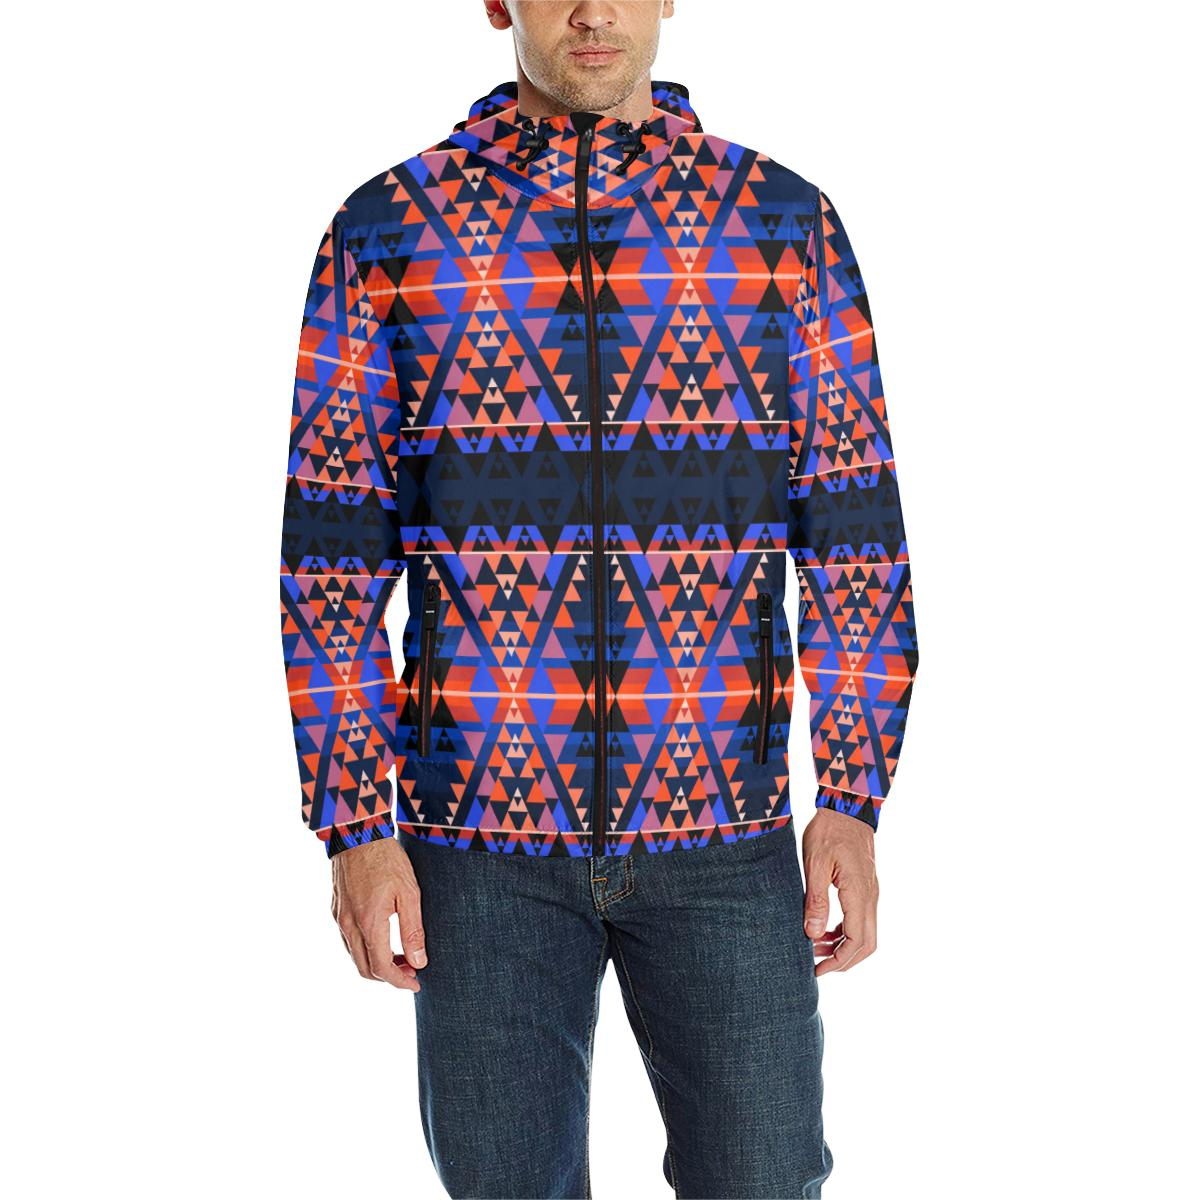 Writing on Stone Battle Unisex Quilted Coat All Over Print Quilted Windbreaker for Men (H35) e-joyer